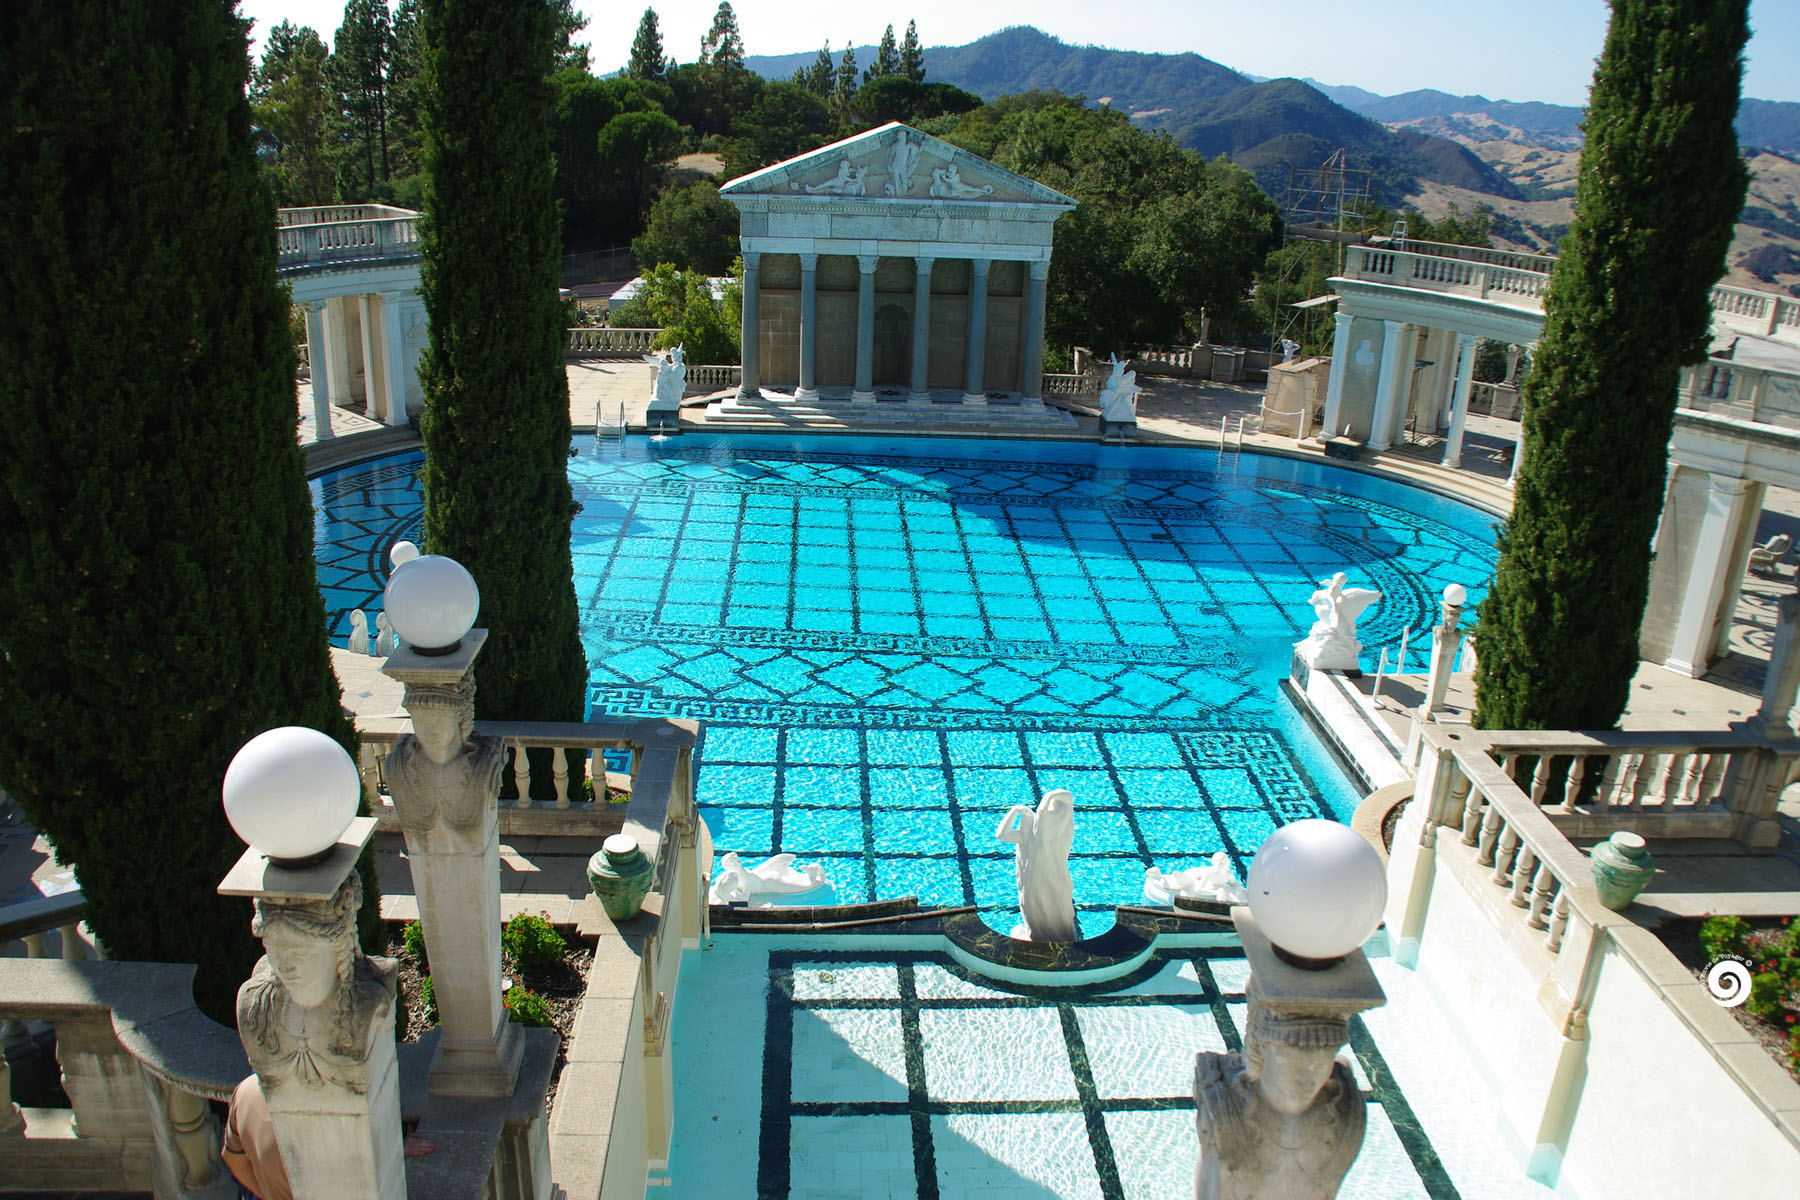 hearst-Devoyager-M-Hearst castle (4)